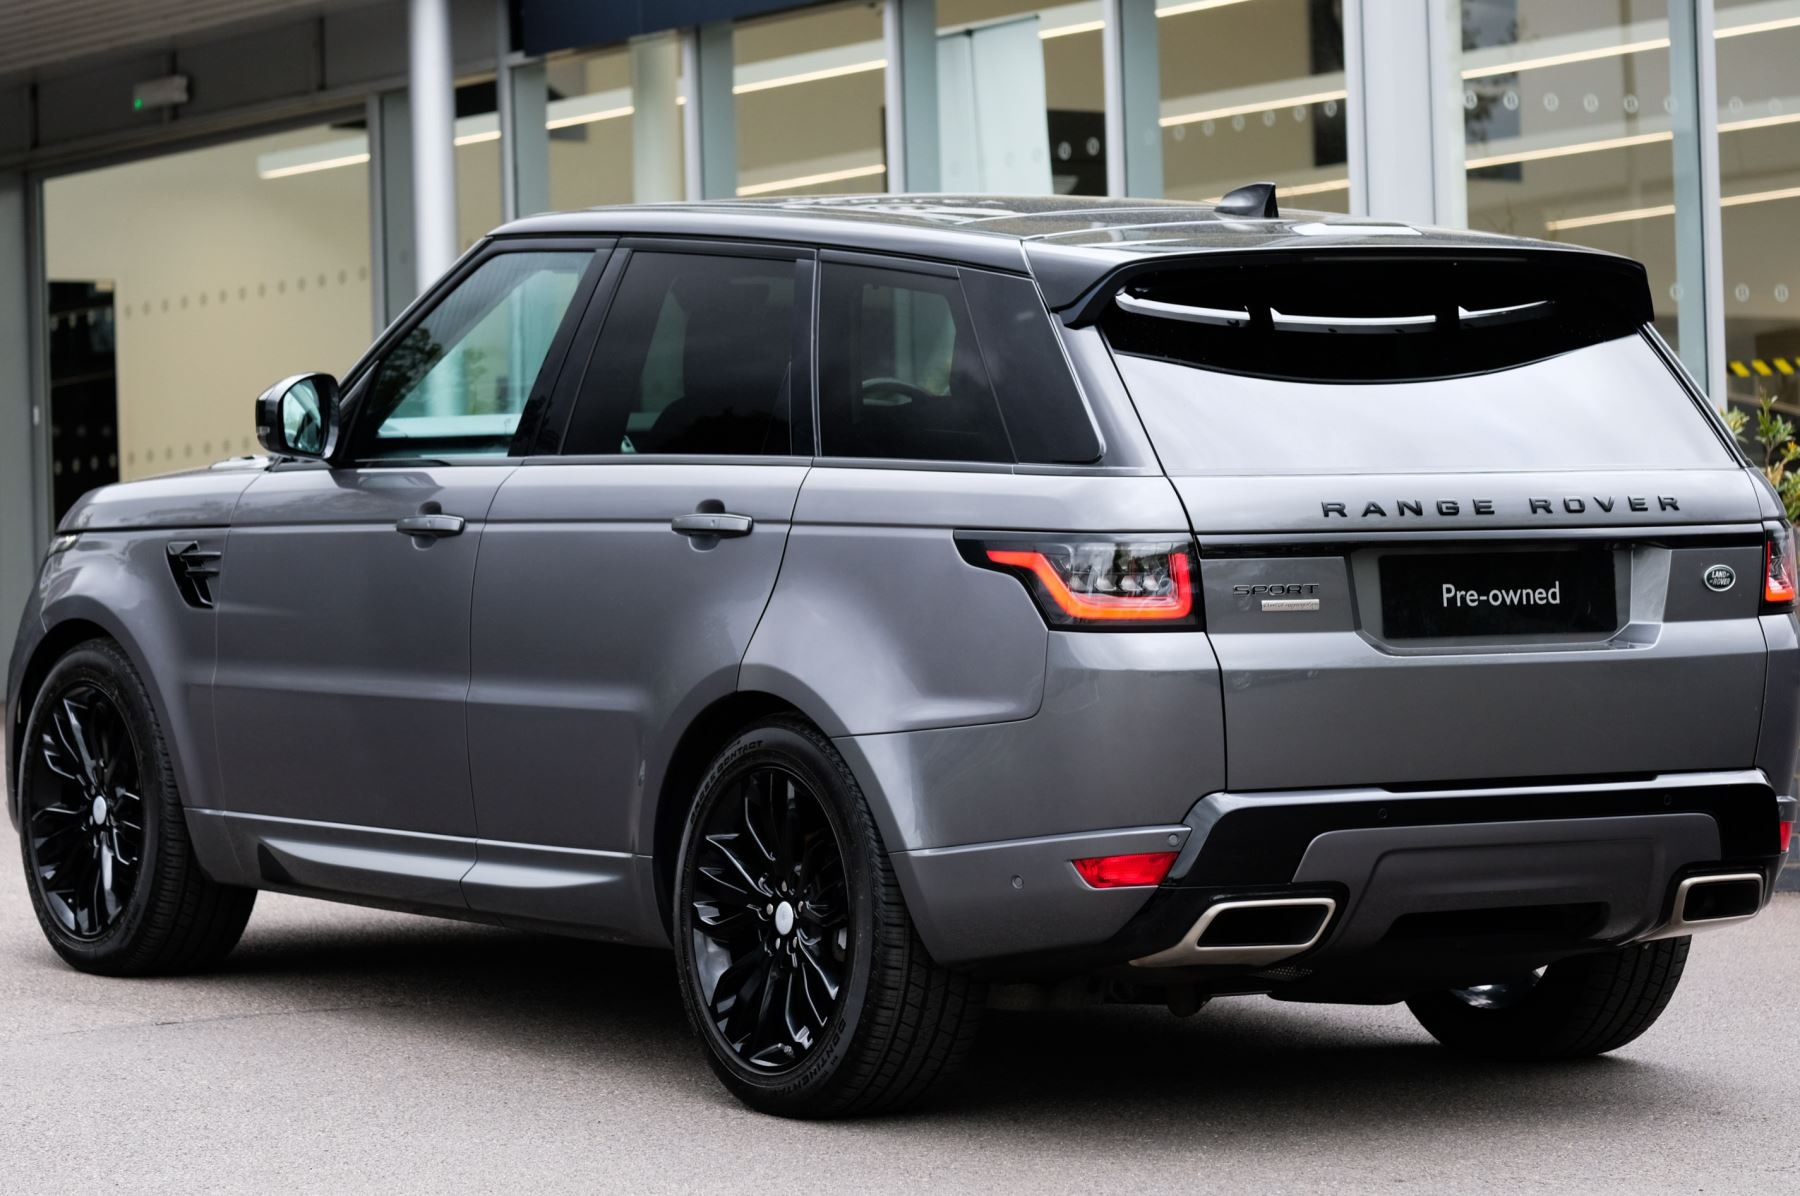 Land Rover Range Rover Sport 3.0 SDV6 Autobiography Dynamic 5dr [7 Seat] - Rear Seat Entertainment - 21 Inch Alloys image 6